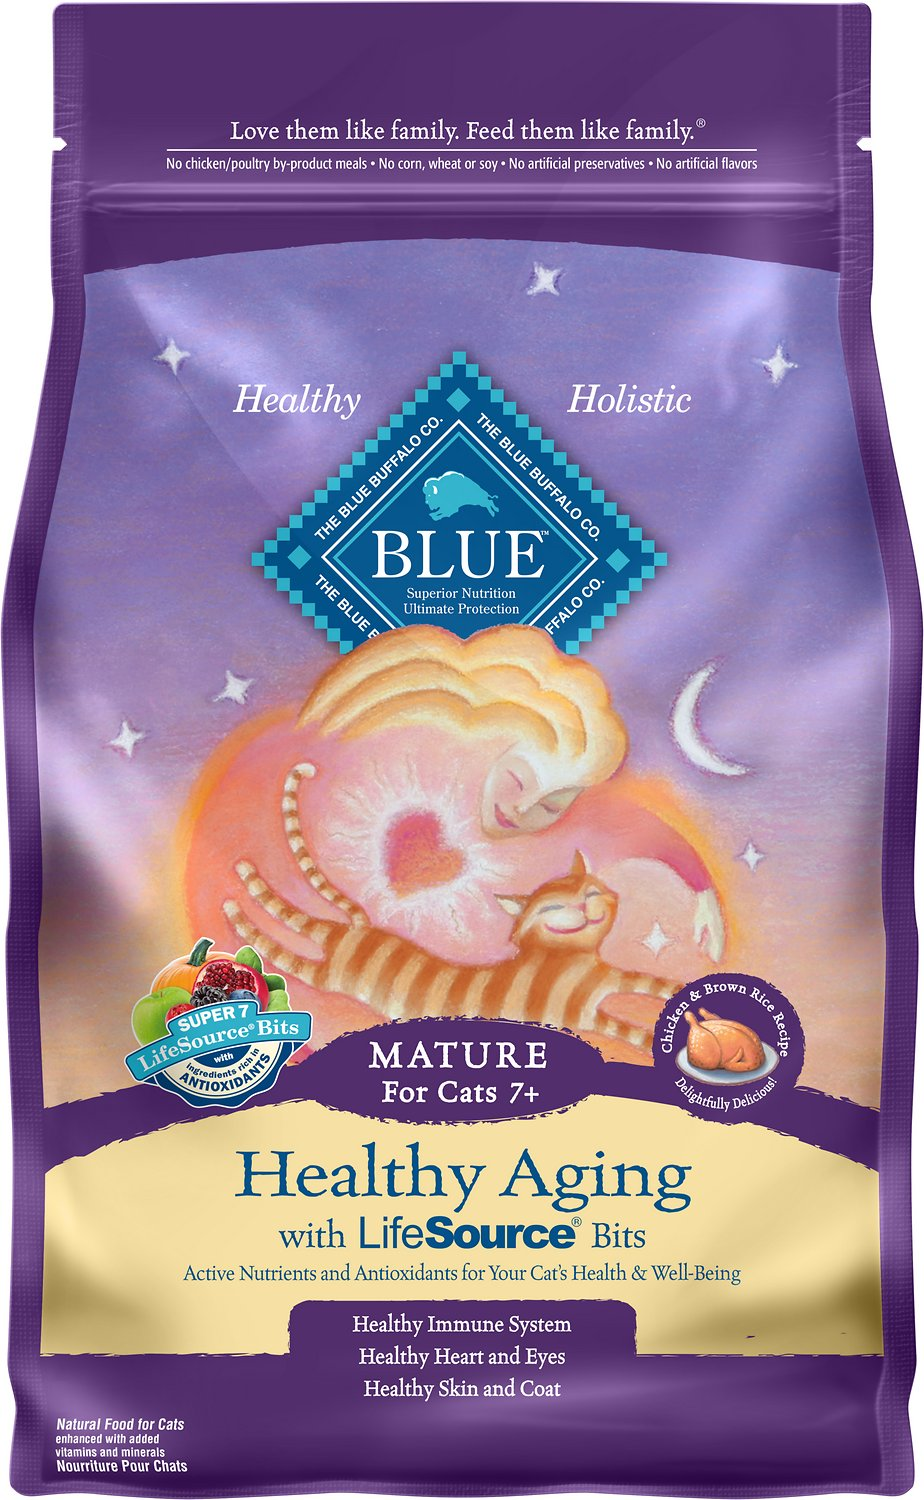 Blue Buffalo Healthy Aging Chicken & Brown Rice Recipe Mature Dry Cat Food Image